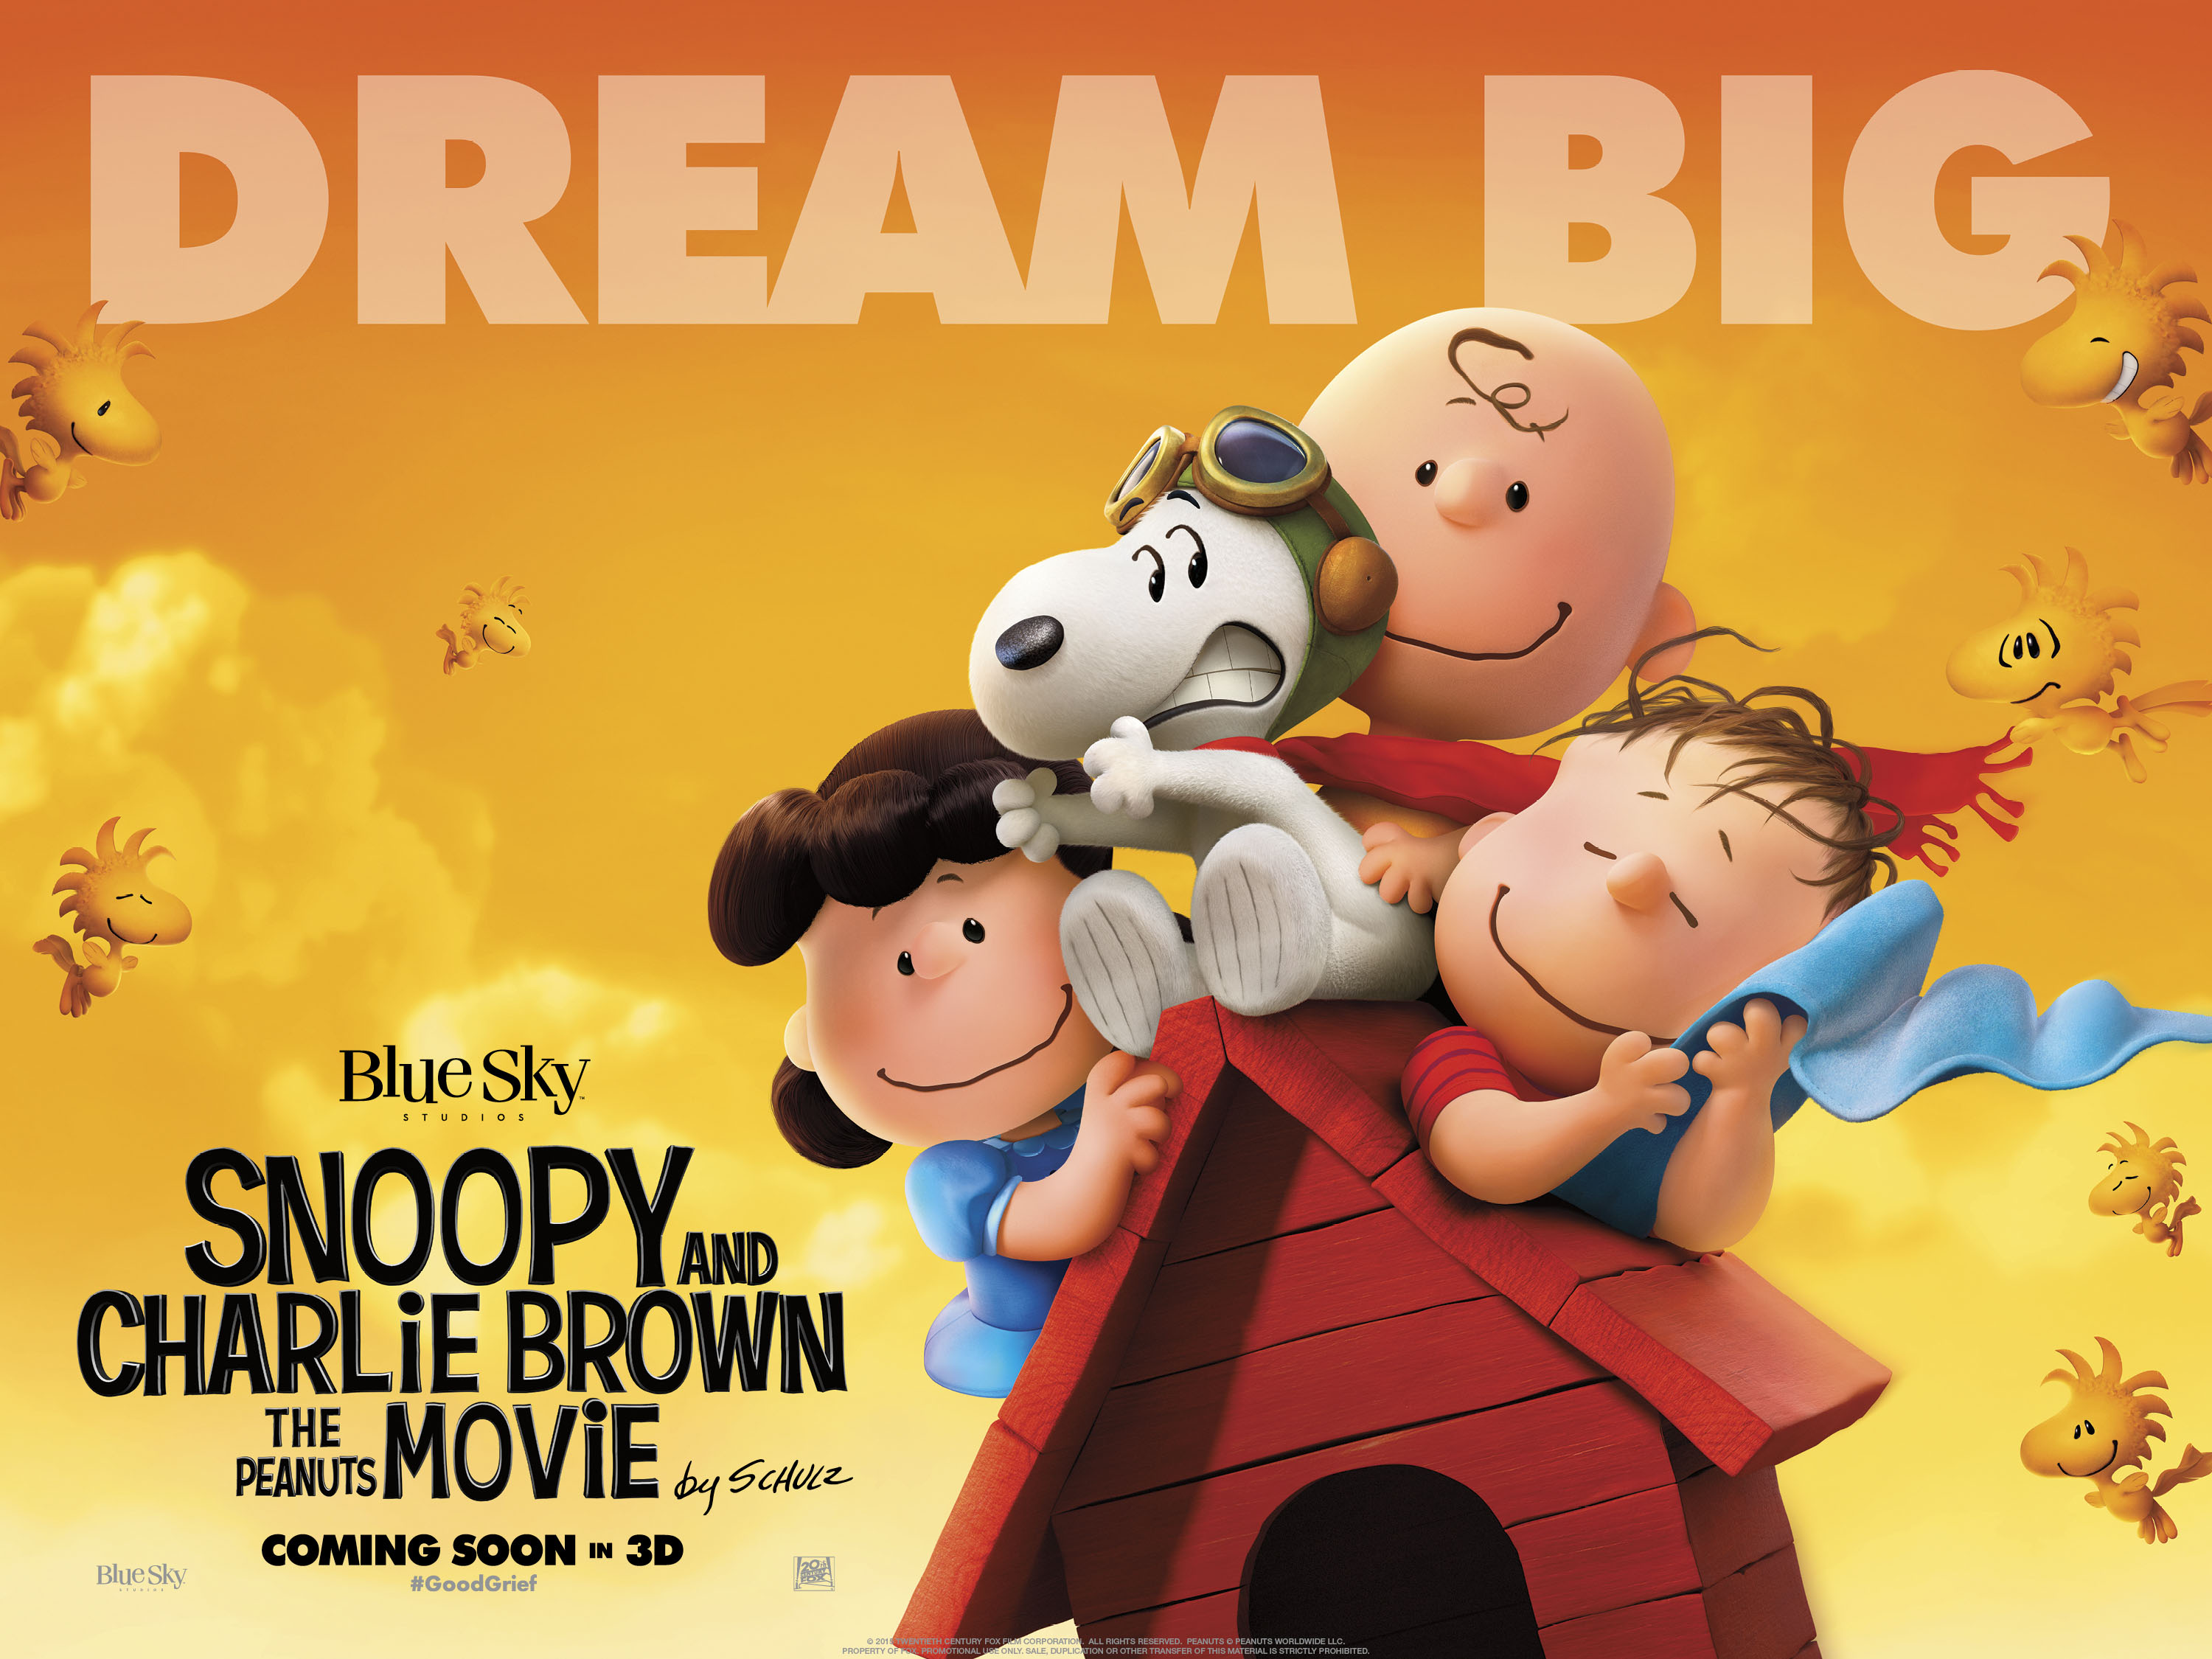 EXCLUSIVE FEATURETTE: 'The Peanuts Movie'